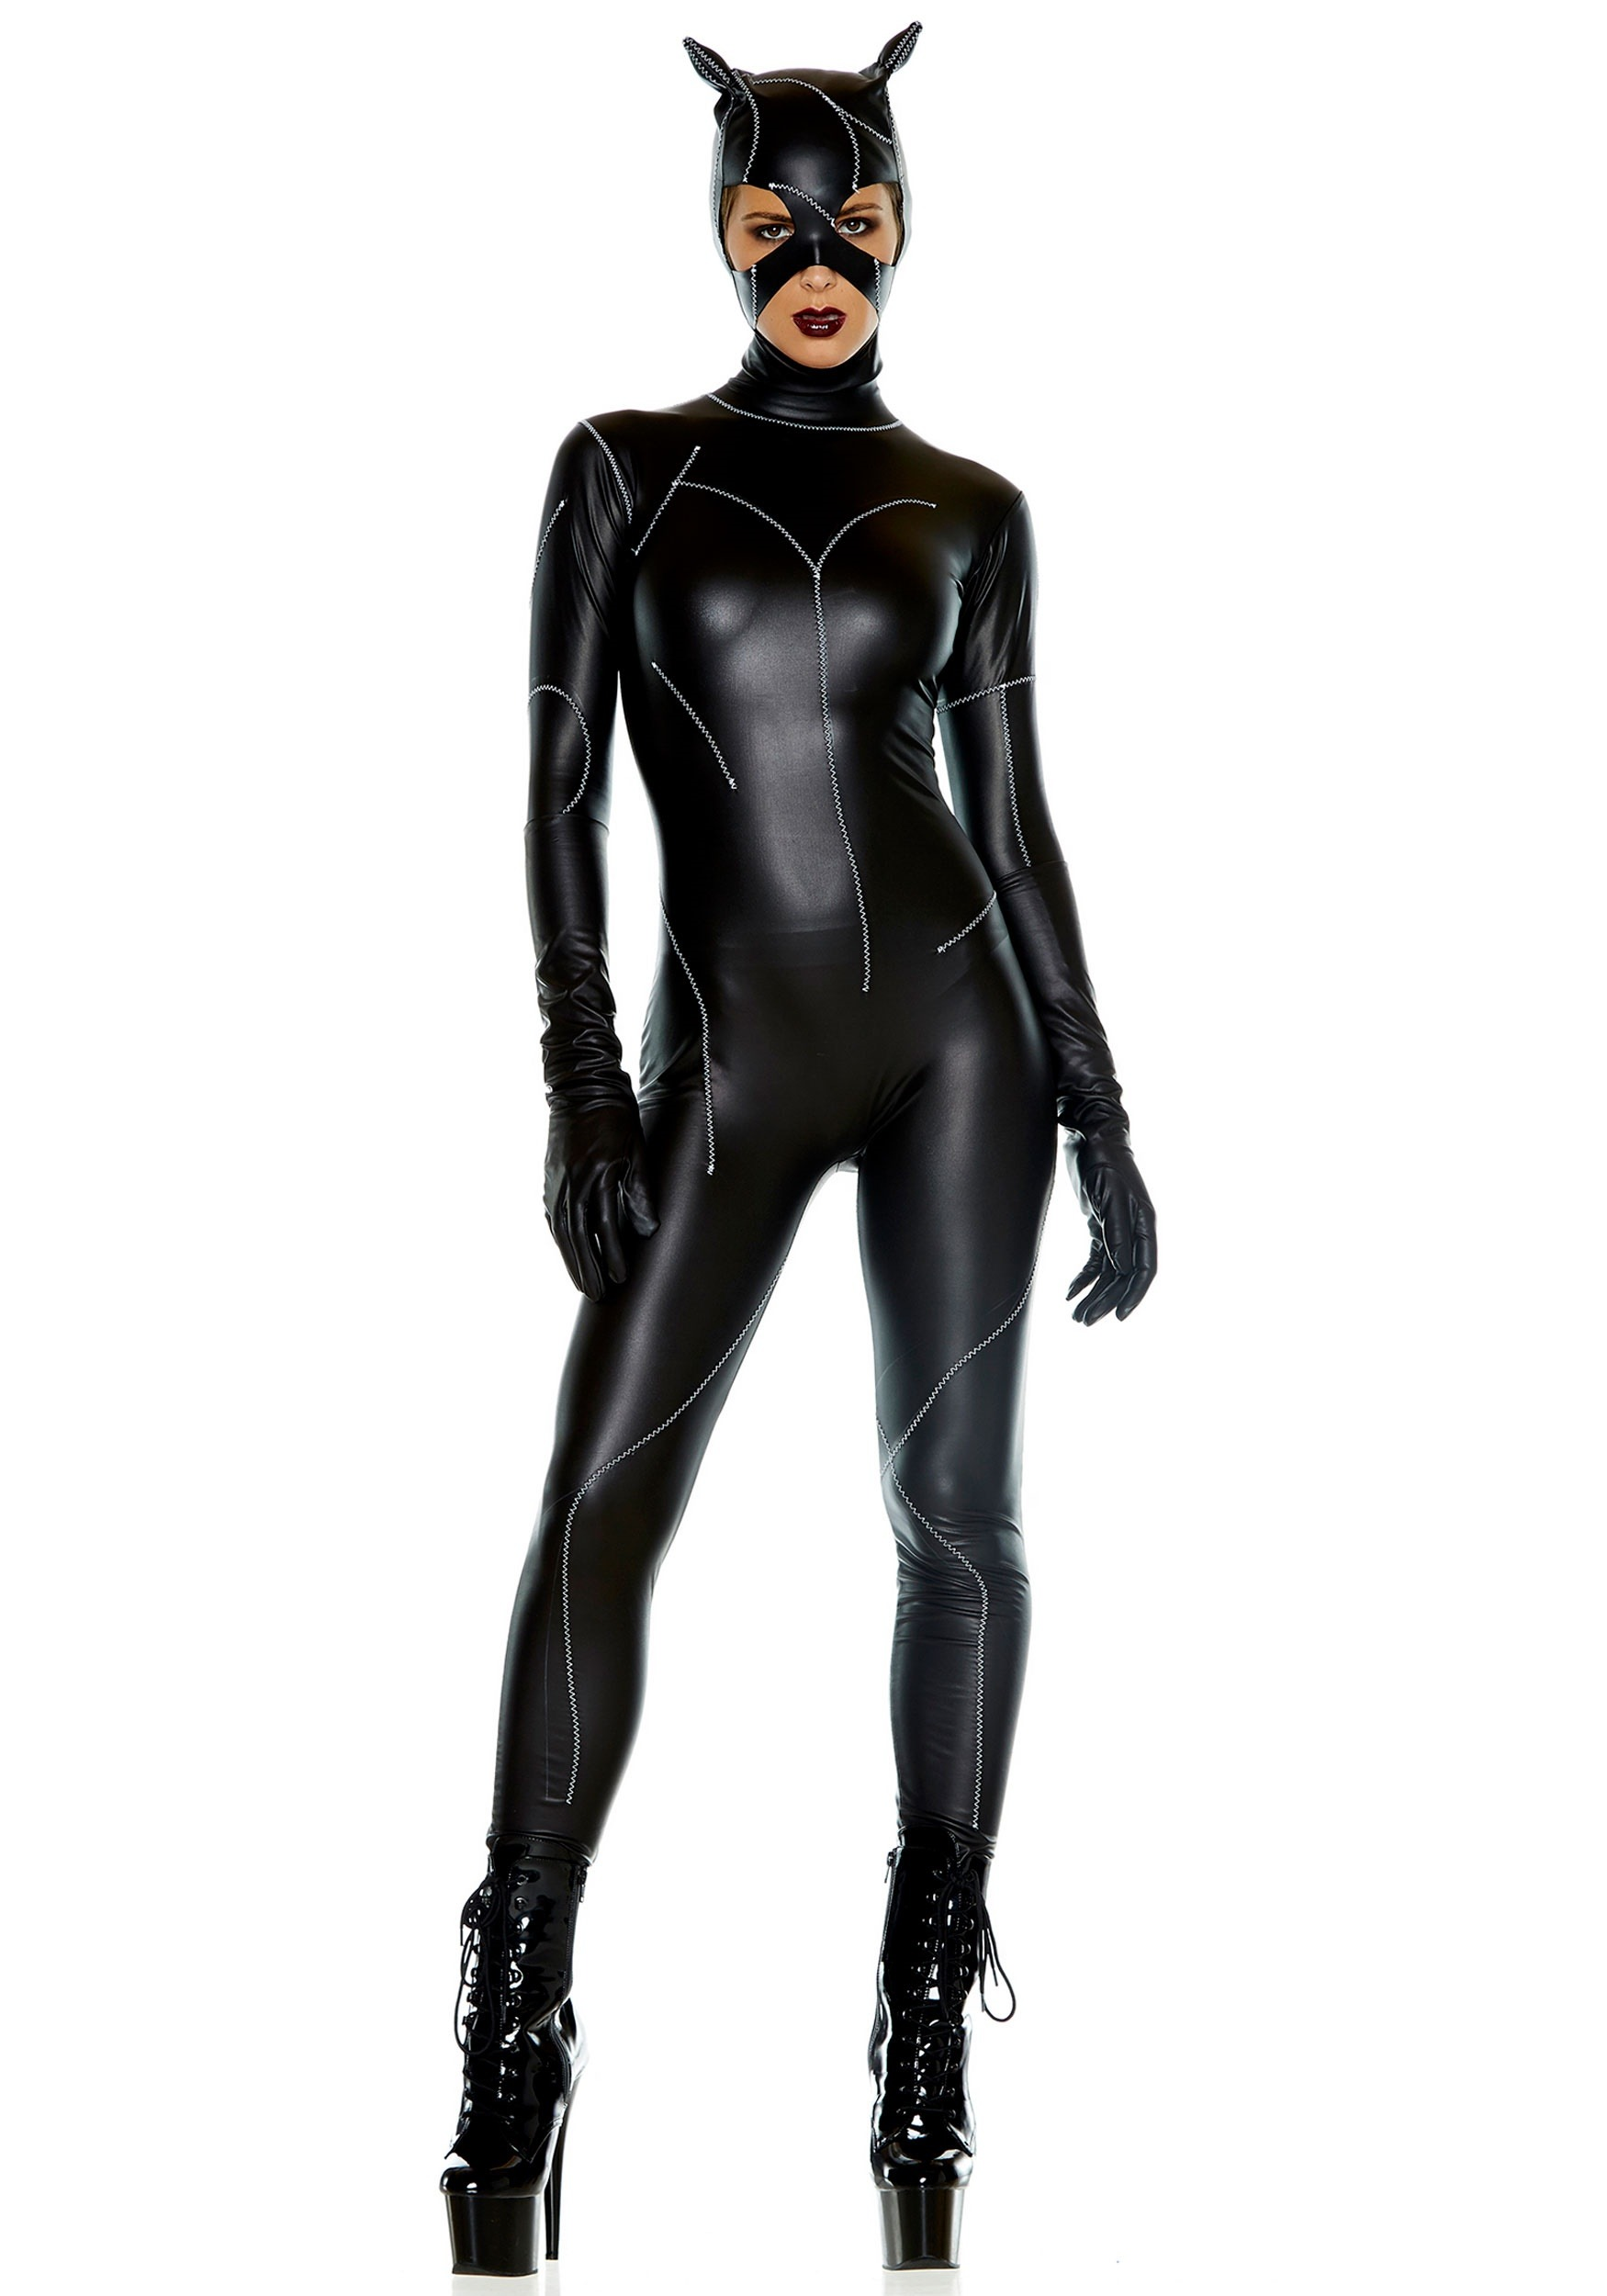 93e6fae090 On The Prowl Catsuit Costume for Women